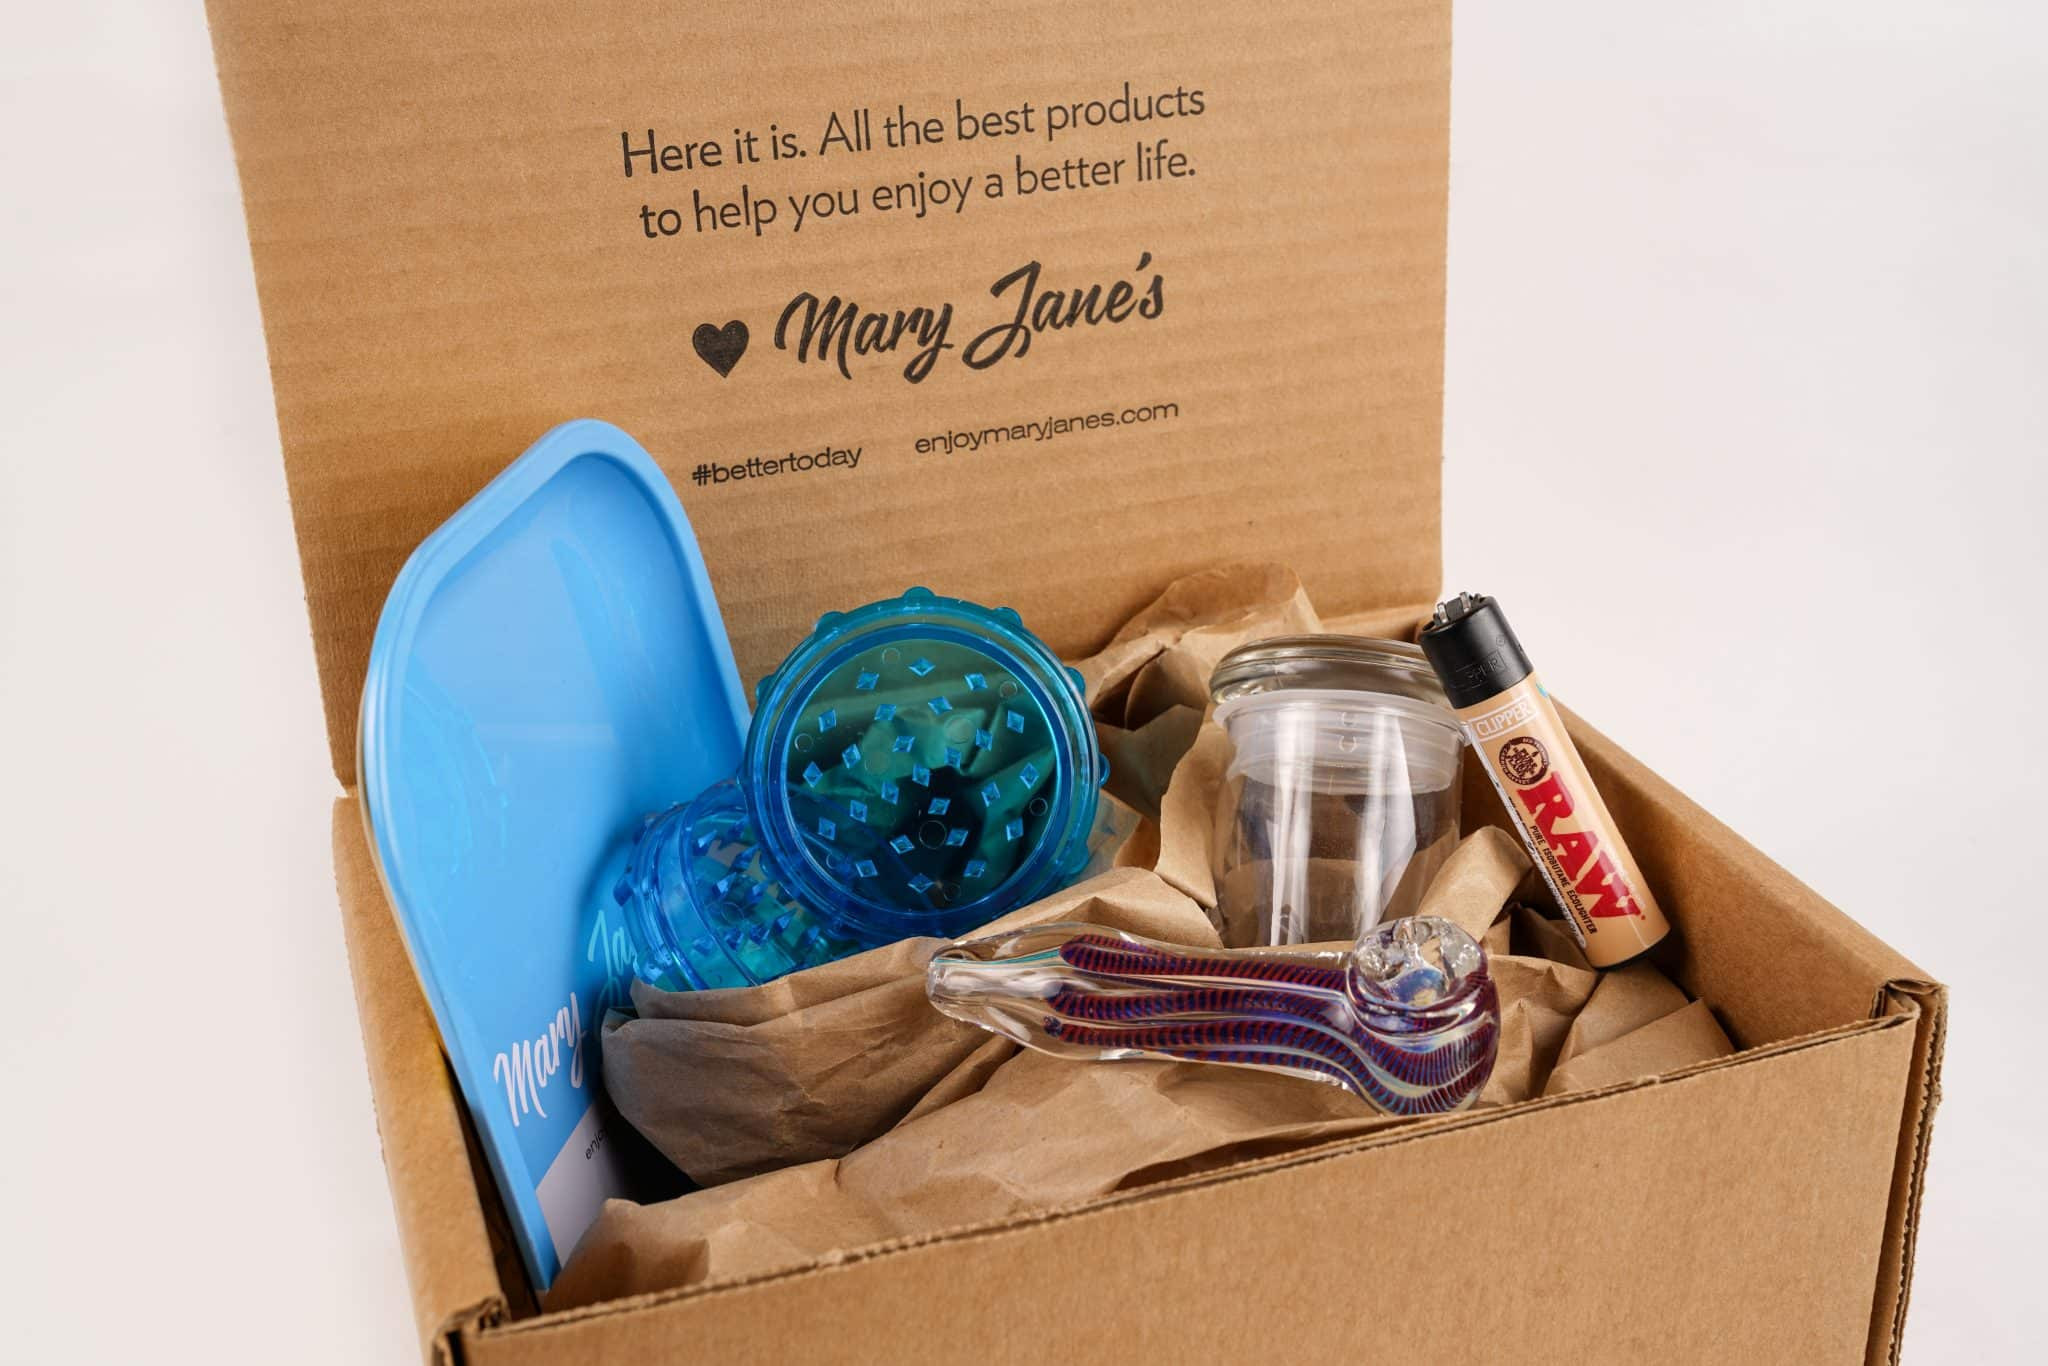 Shop prebuilt smoking subscription boxes and smokers bundles at atomicblaze.com, best online headshop.